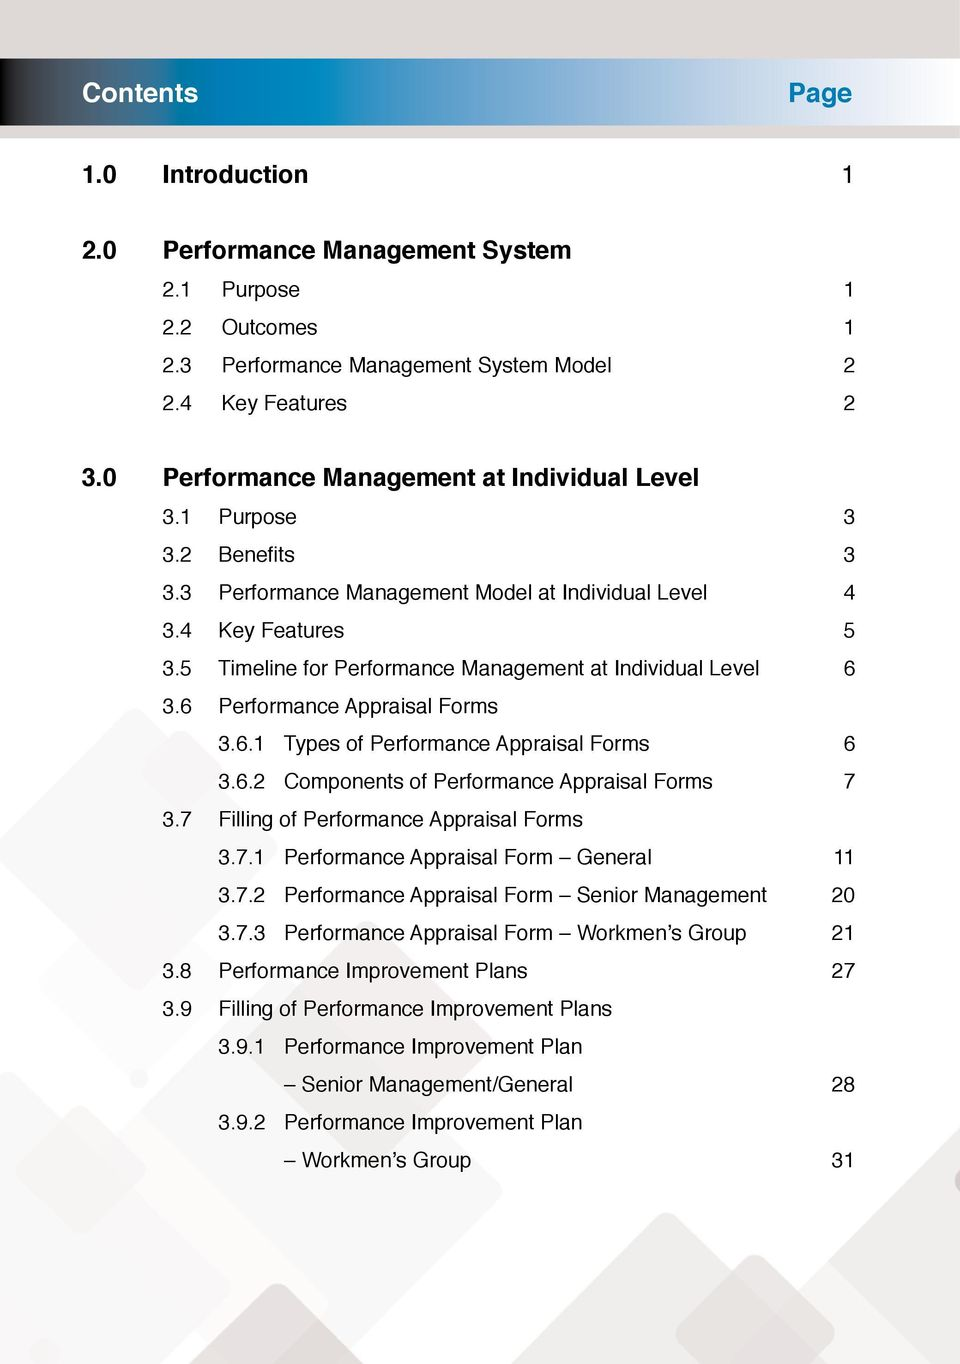 5 Timeline for Performance Management at Individual Level 6 3.6 Performance Appraisal Forms 3.6.1 Types of Performance Appraisal Forms 6 3.6.2 Components of Performance Appraisal Forms 7 3.